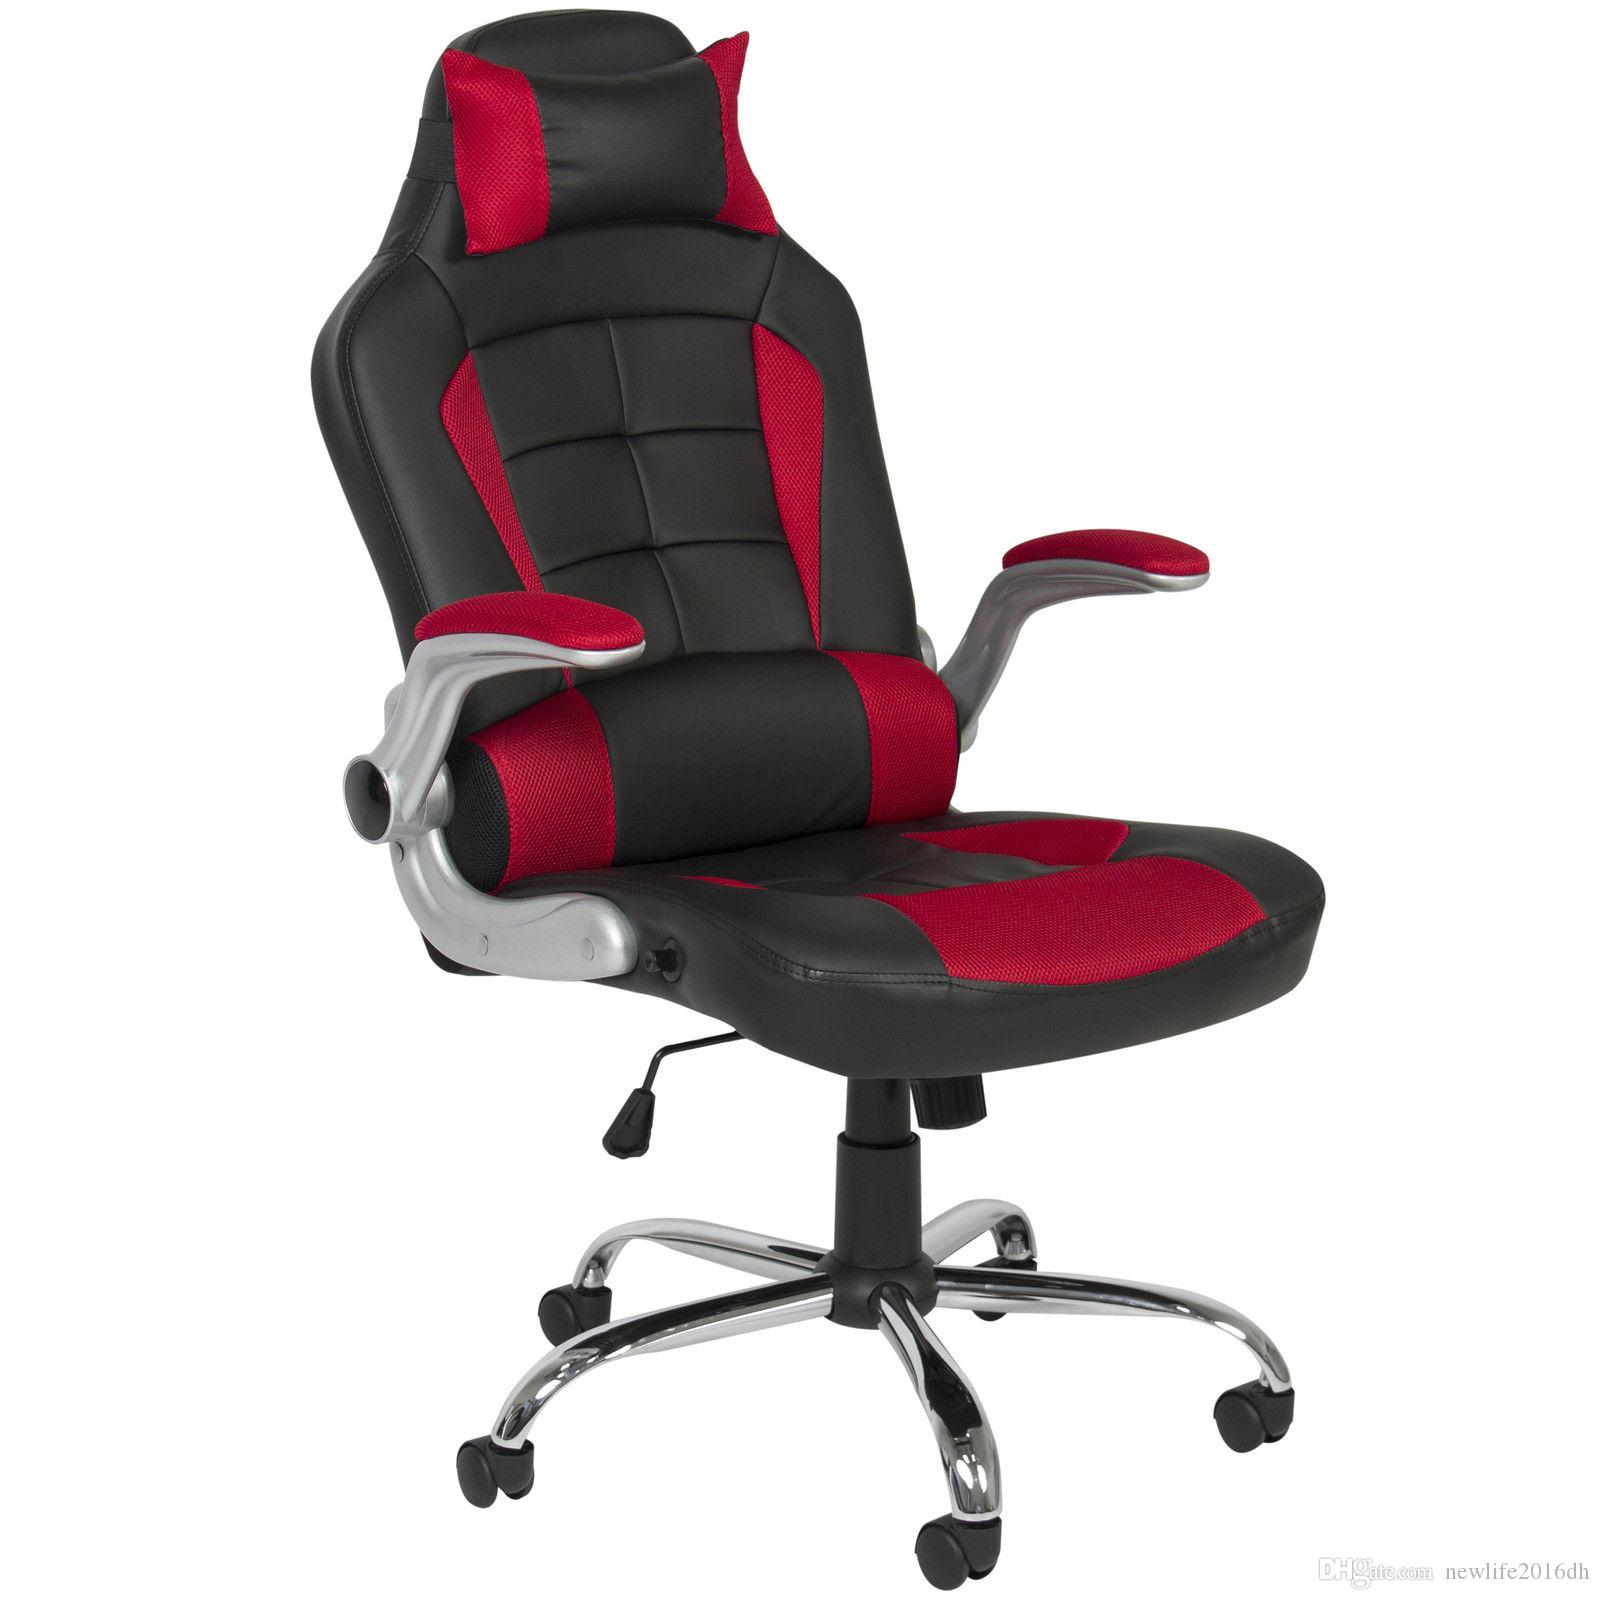 2019 bcp deluxe ergonomic racing style pu leather office chair rh dhgate com